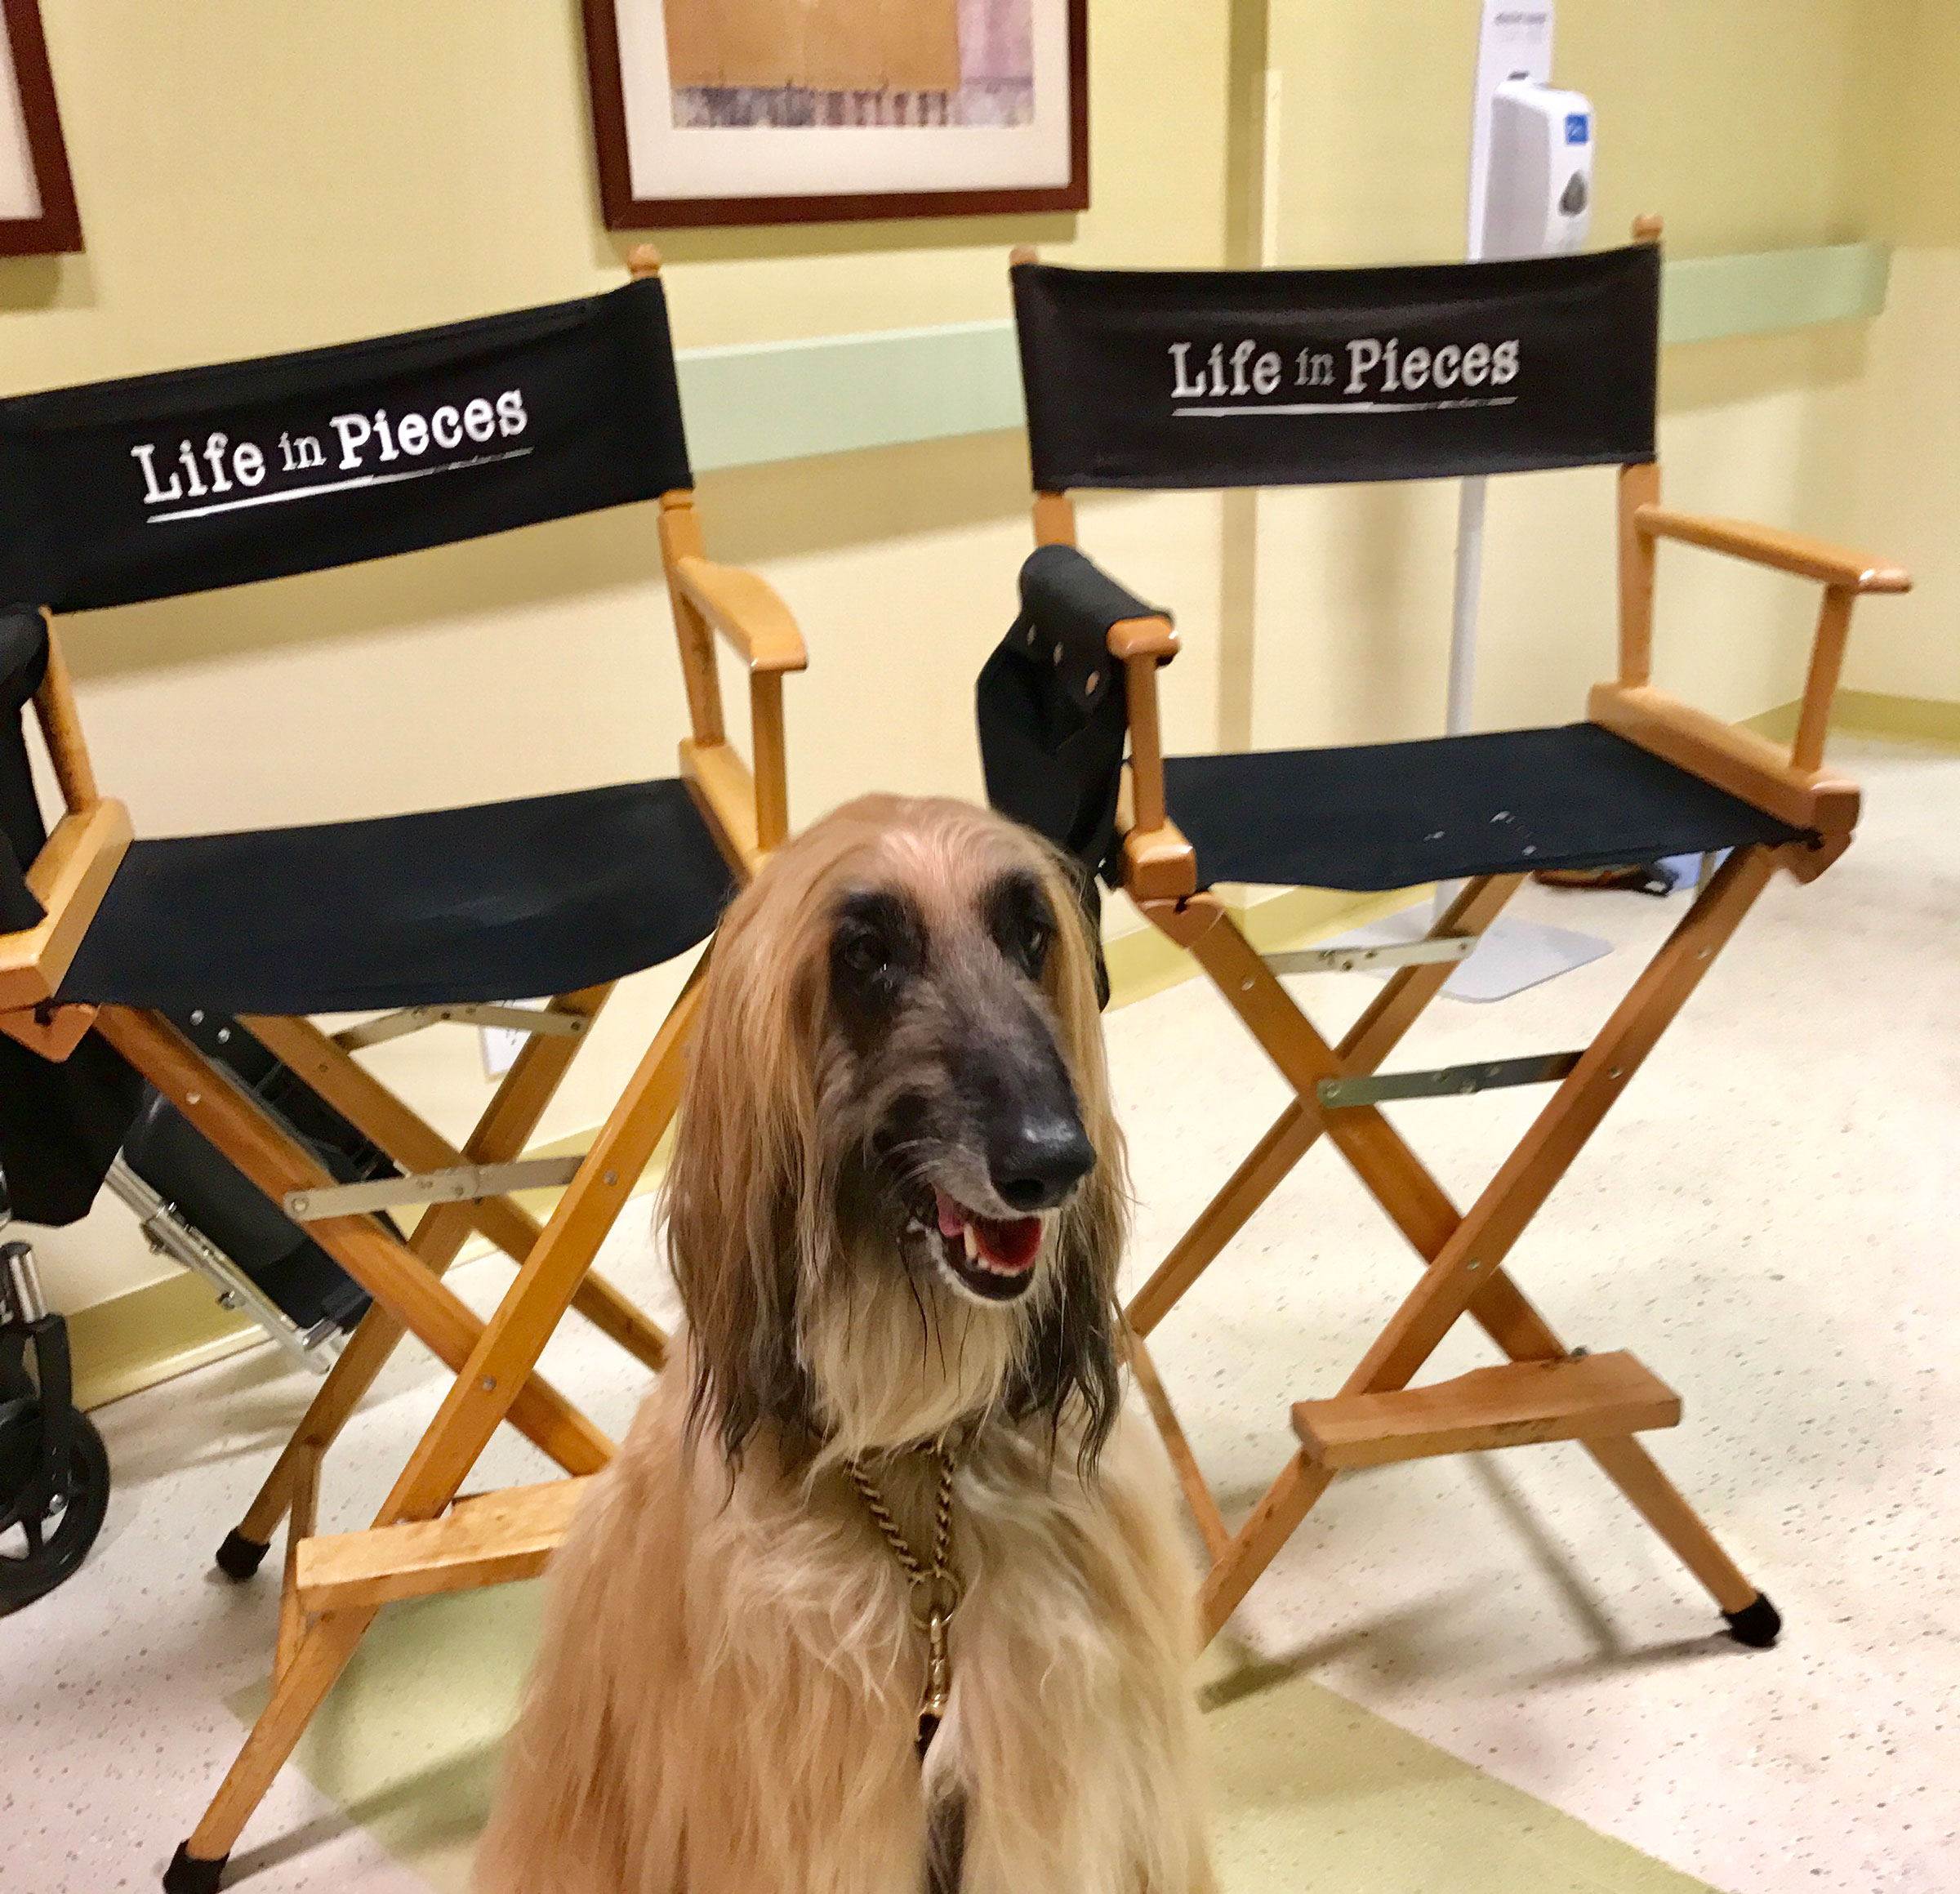 shai and adar  afghan hound actors based in southern california